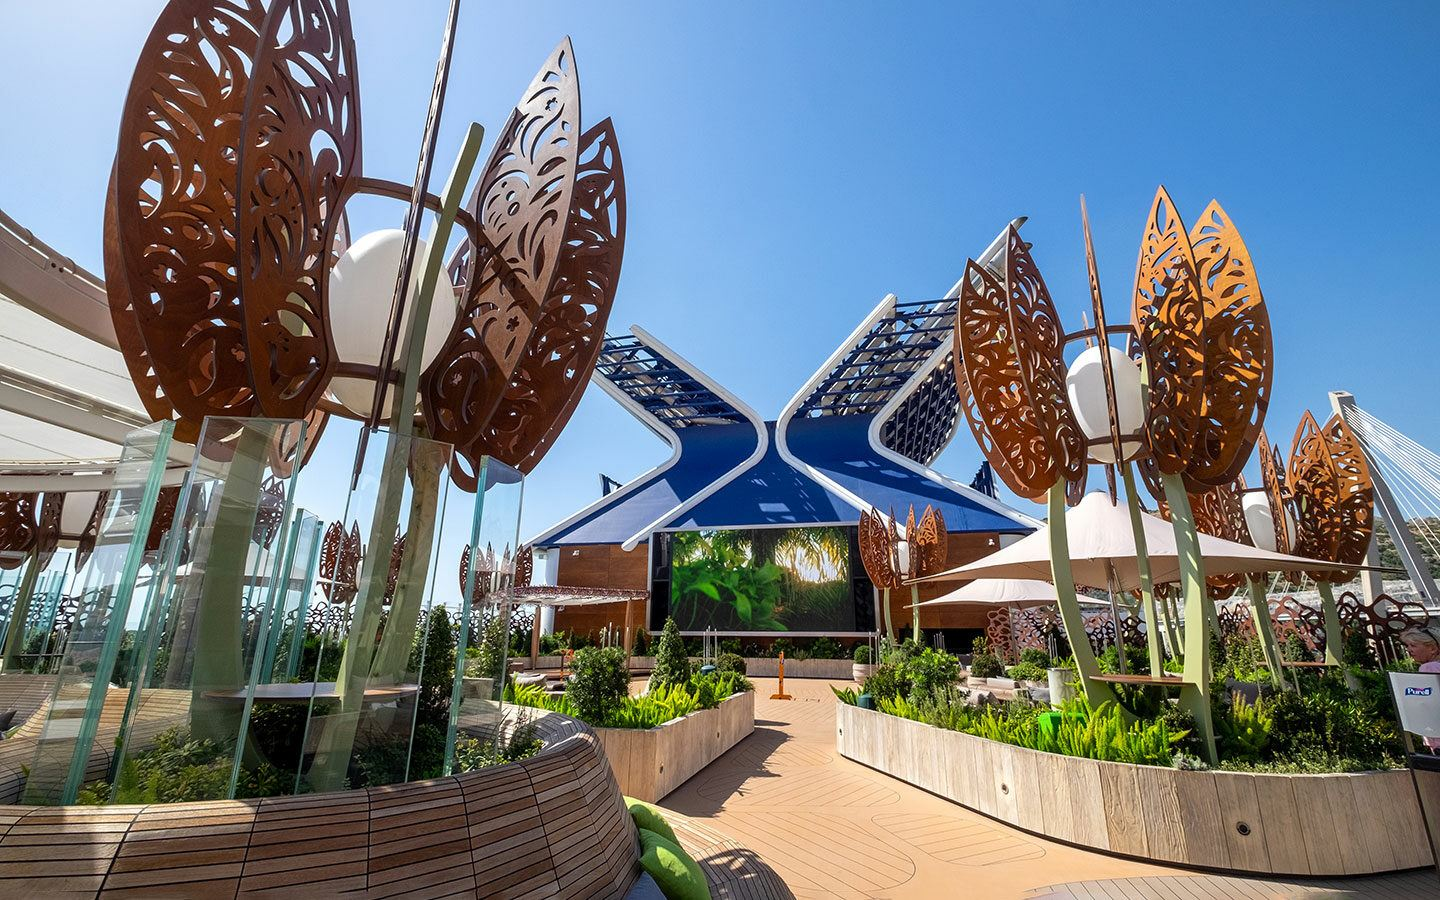 The Rooftop Garden on Celebrity Apex